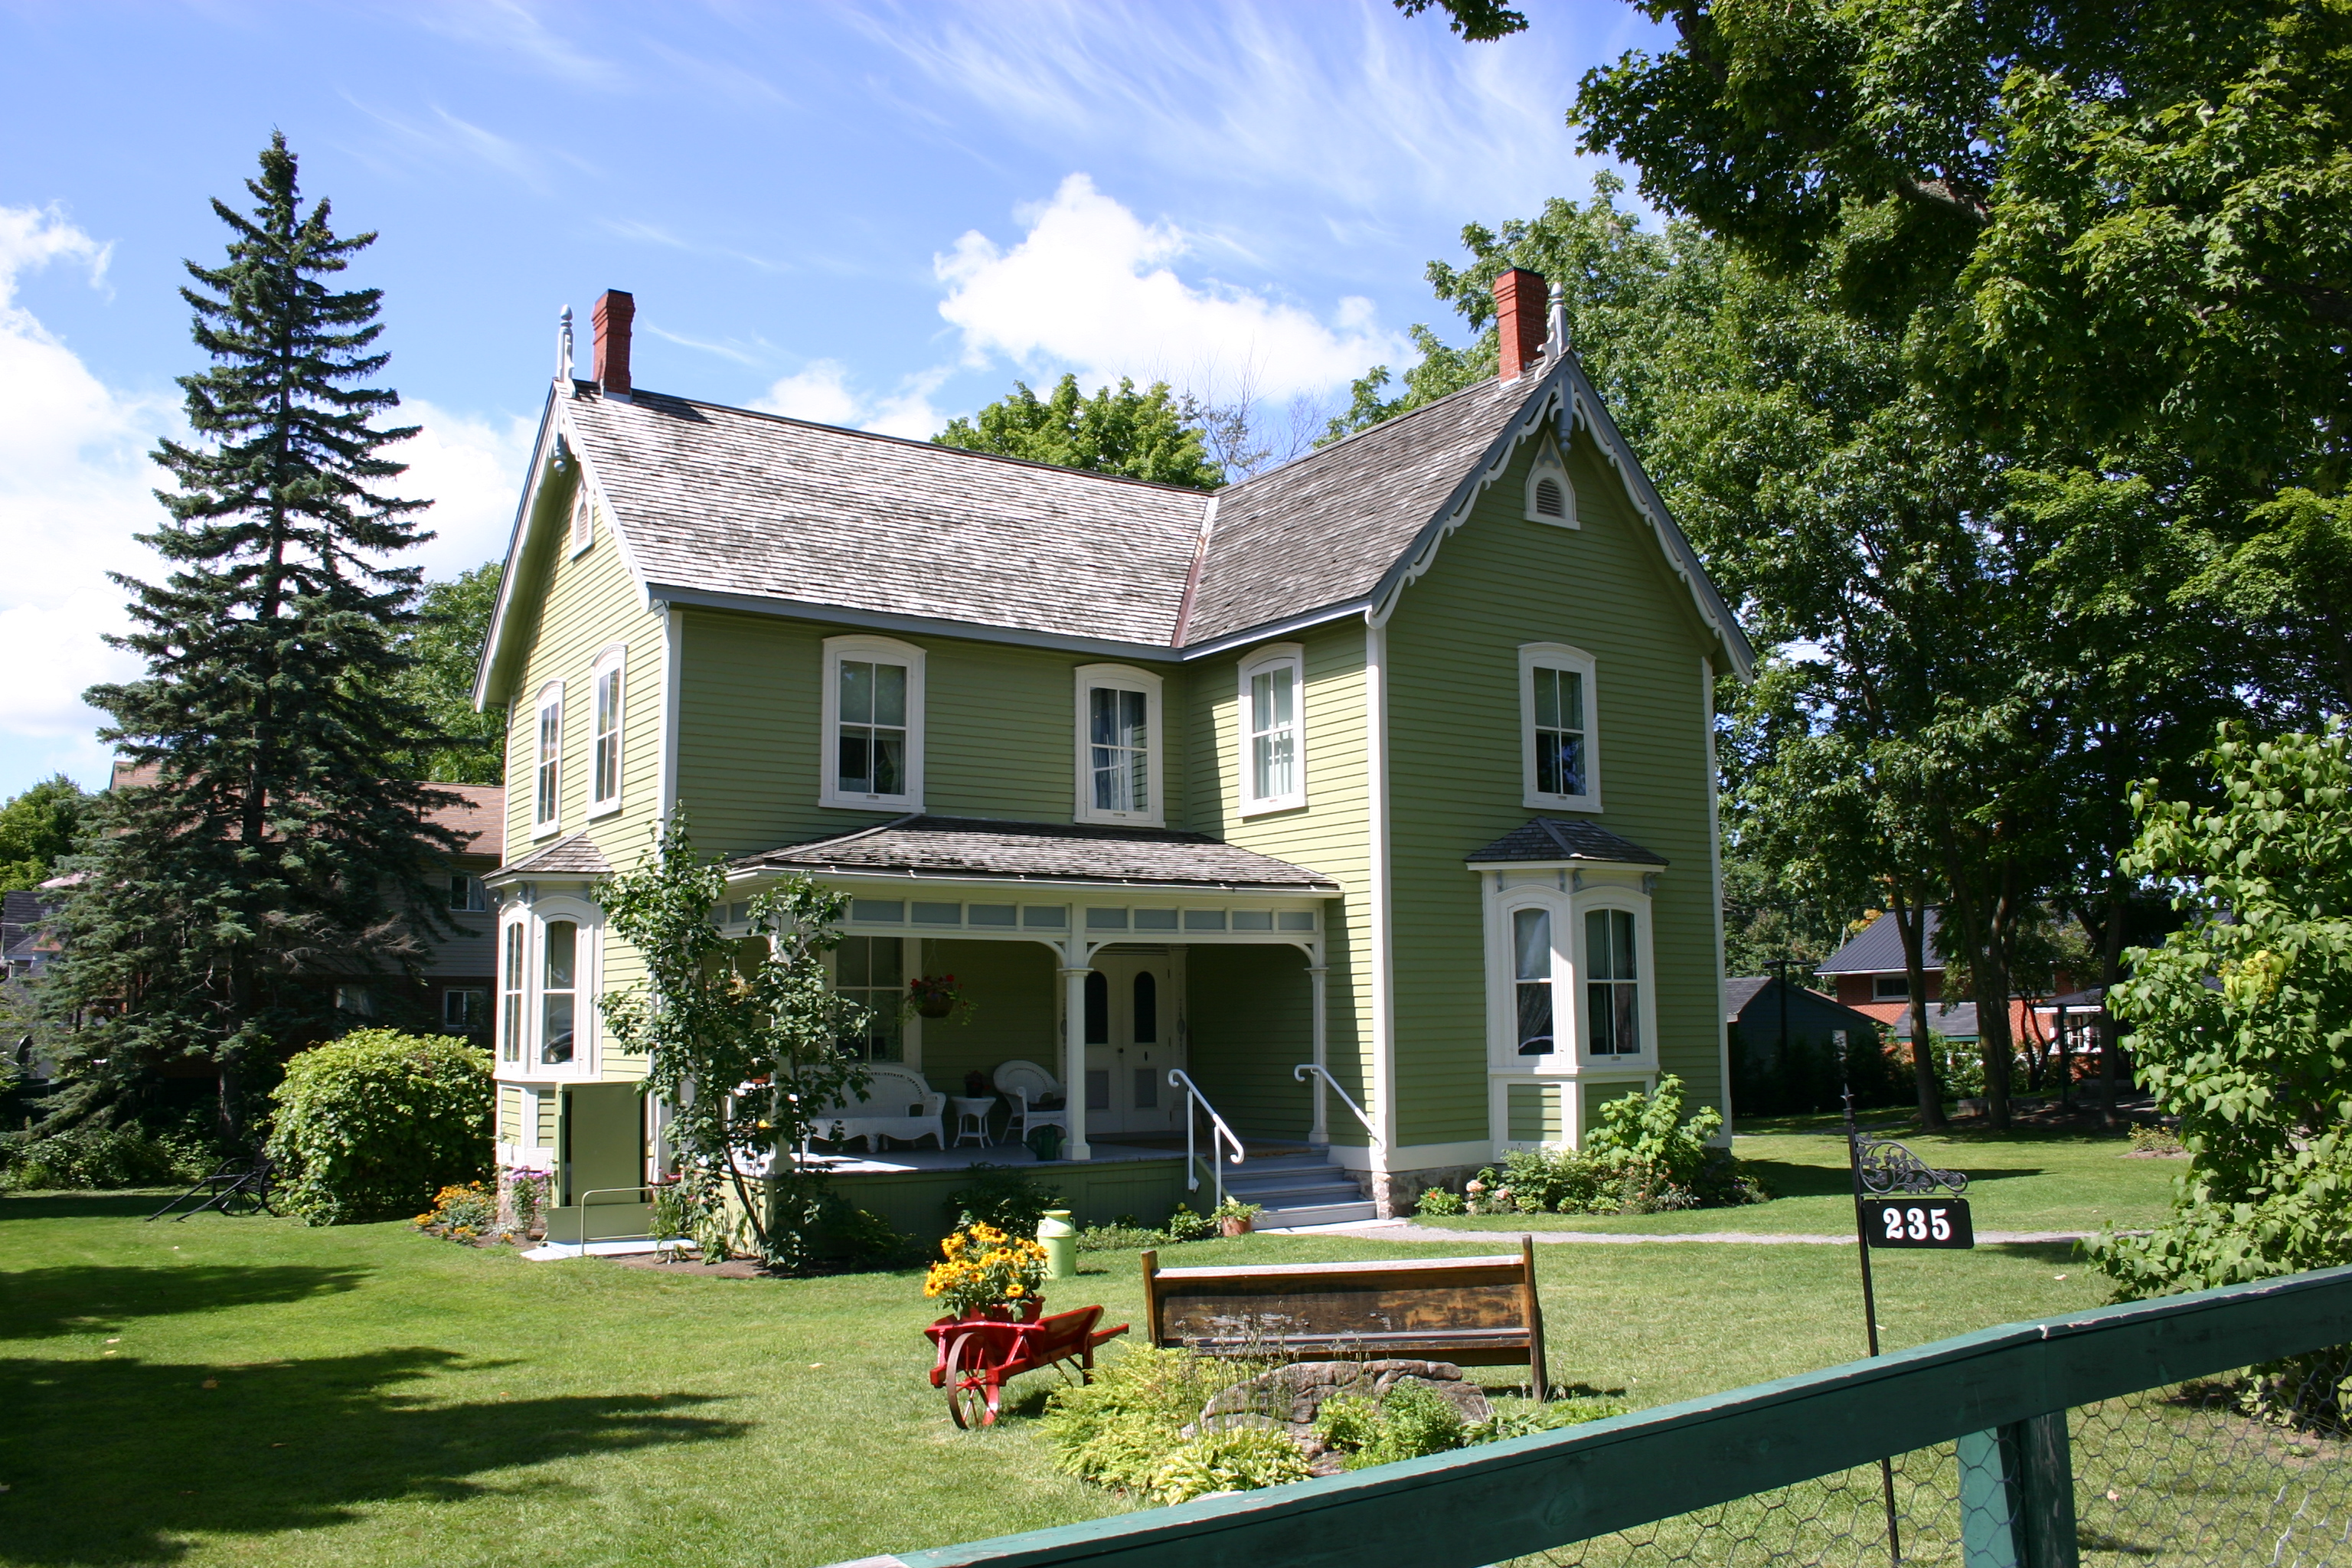 Birthplace of Norman Bethune